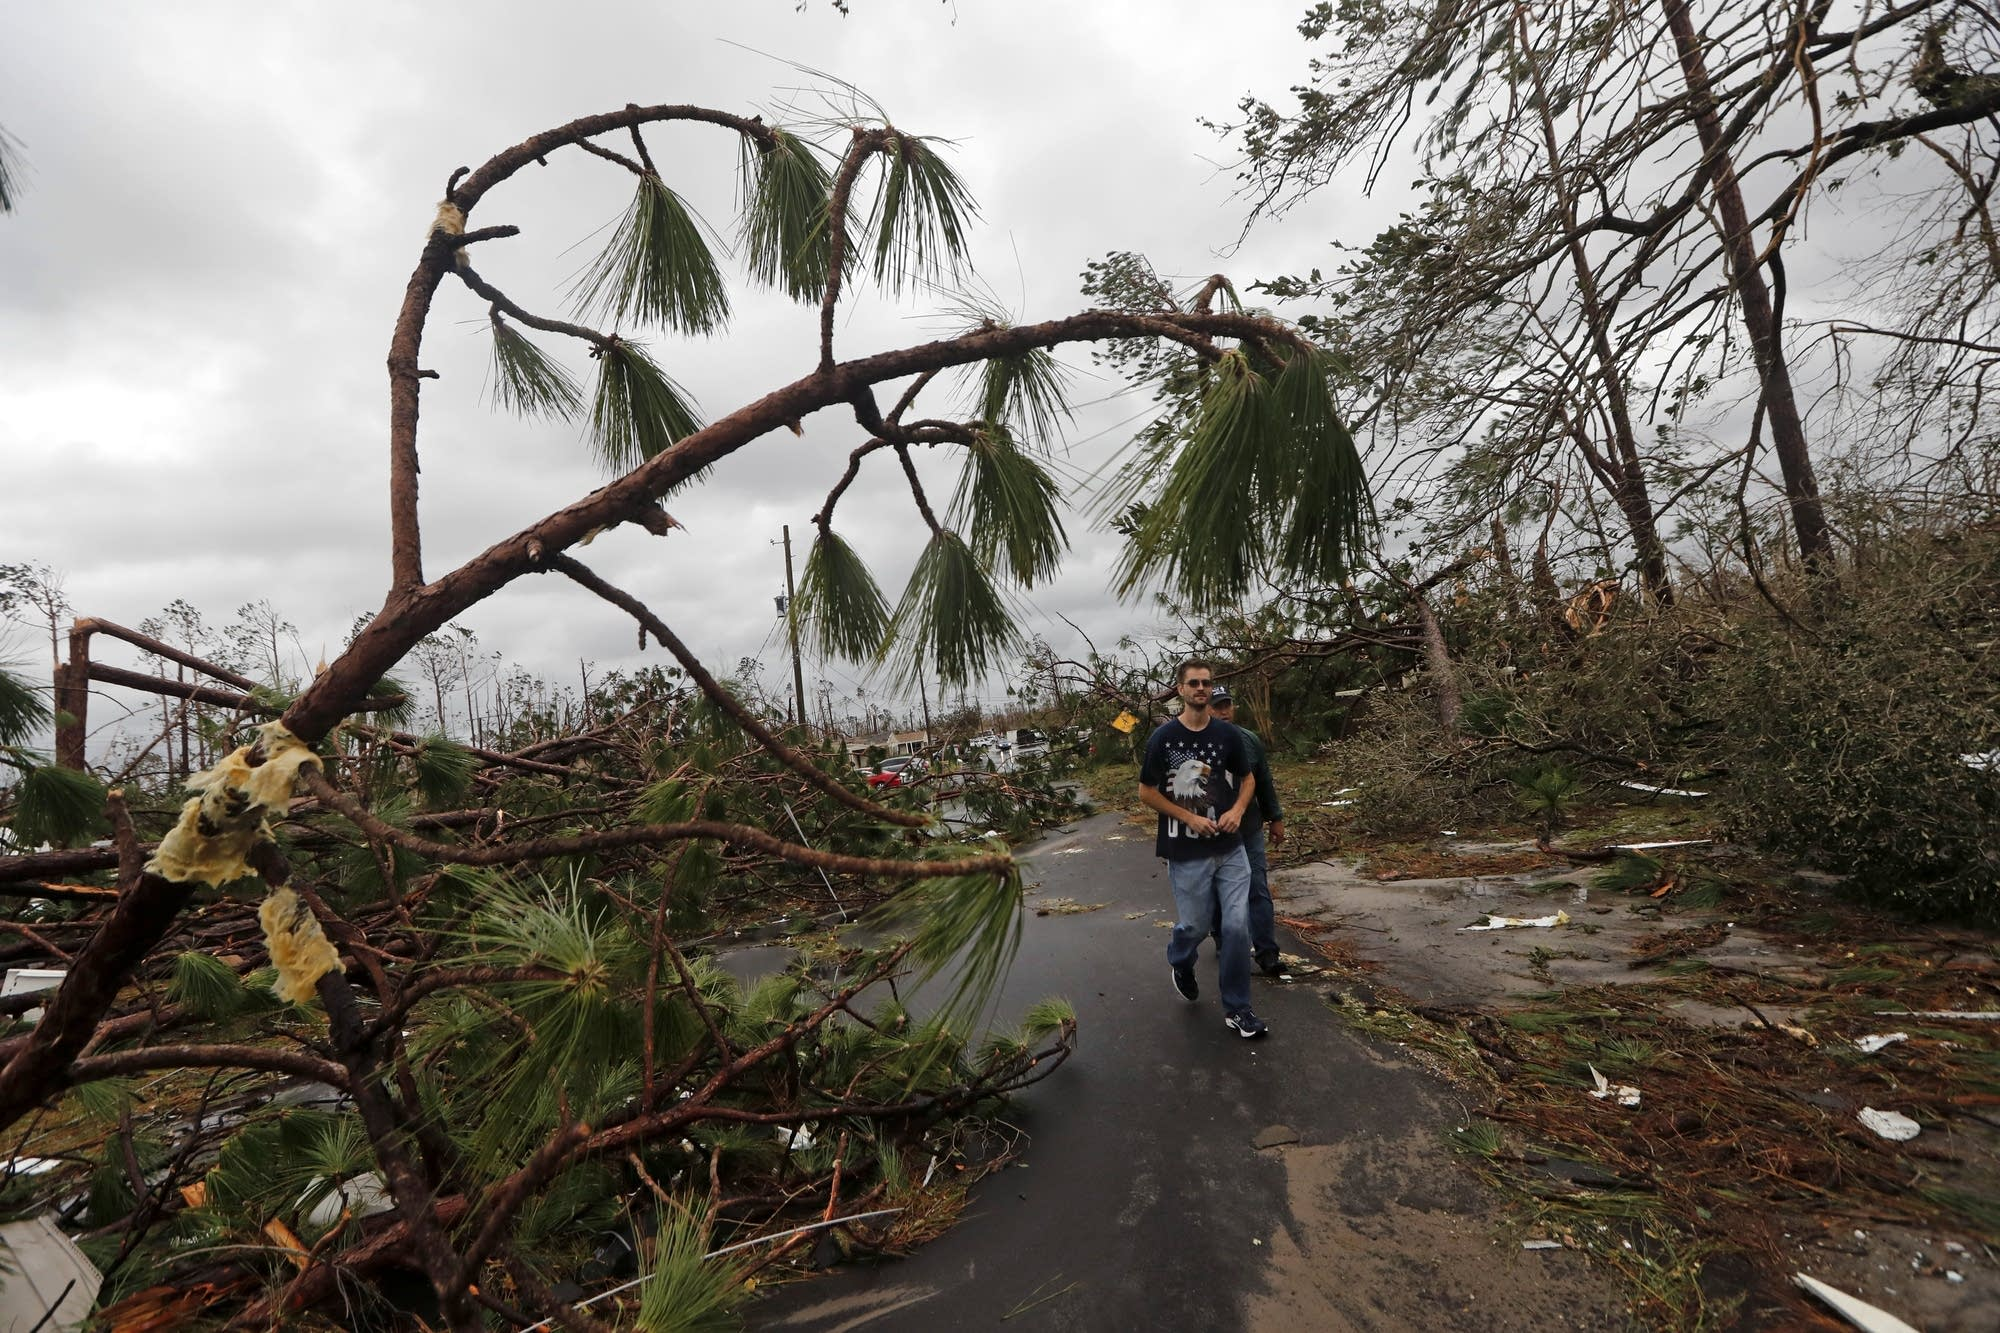 People walk through downed trees in a heavily damaged neighborhood.